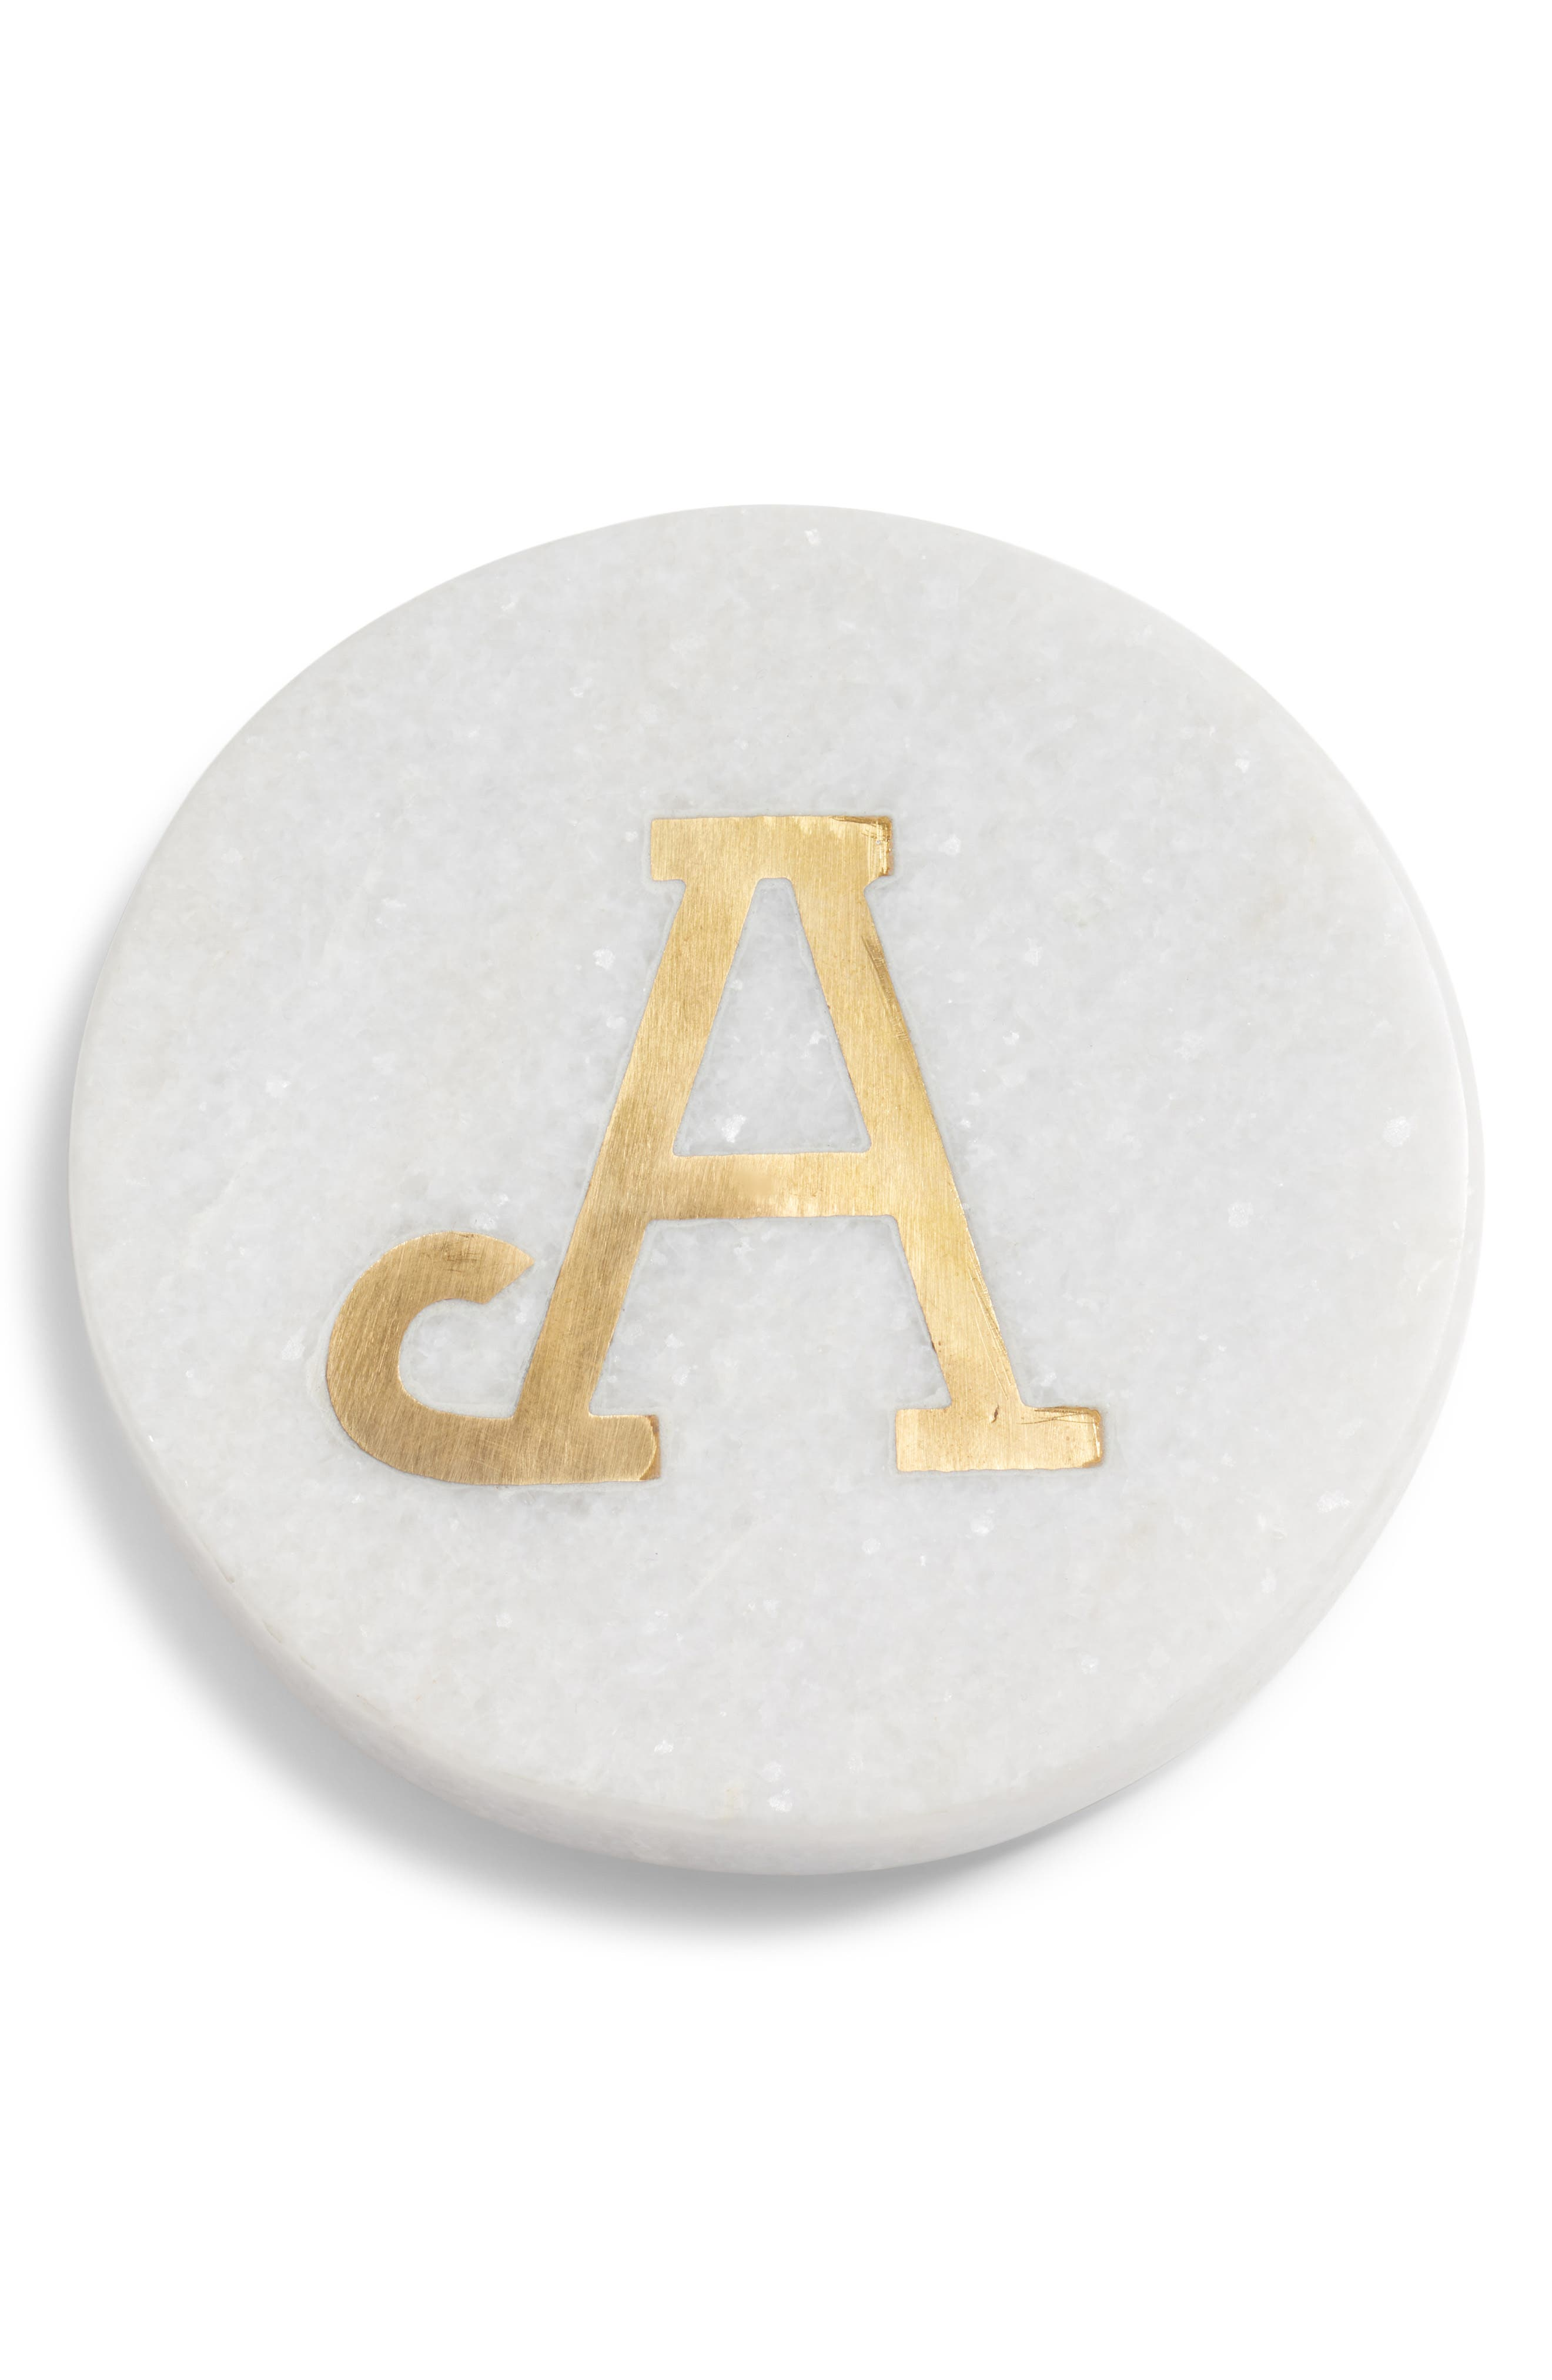 Marble Monogram Coaster,                         Main,                         color, WHITE/ GOLD A